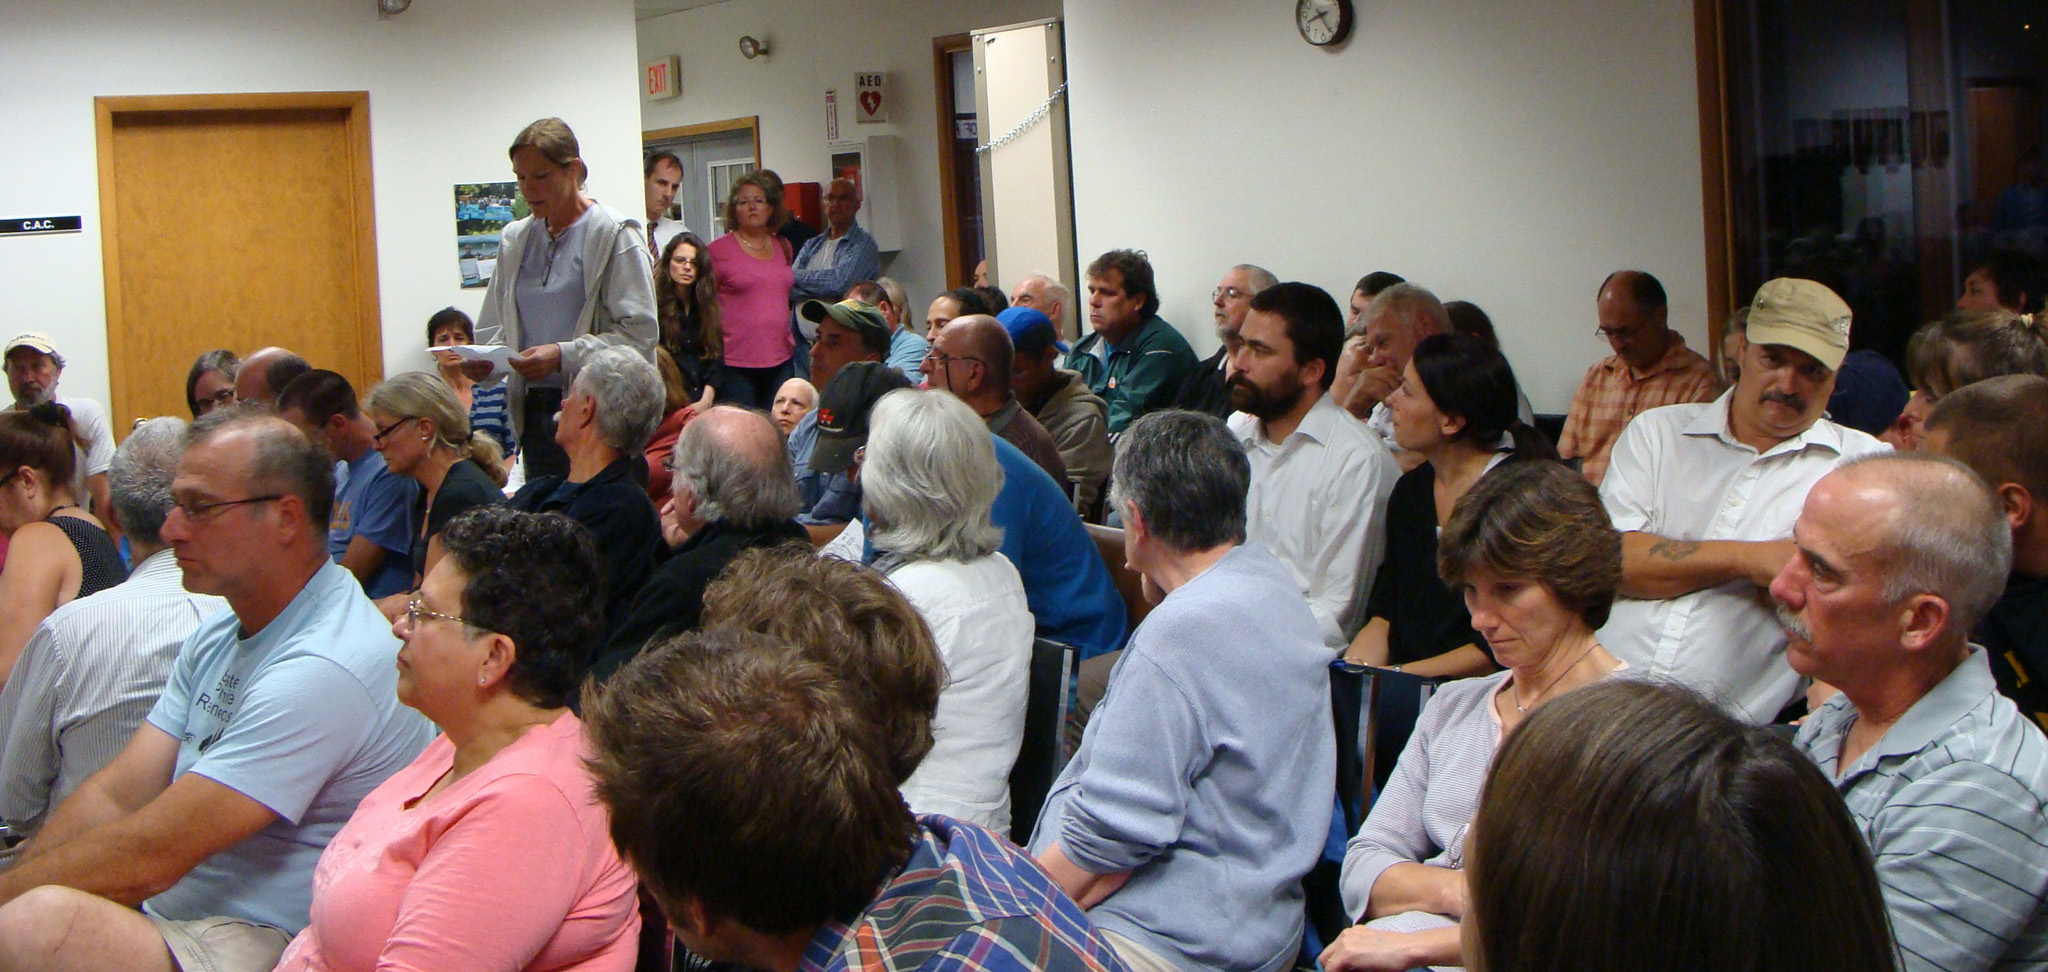 Red Hook Town Hall was the place to be on August 20 as approximately 100 people crowded into the meeting room to hear about the new development.